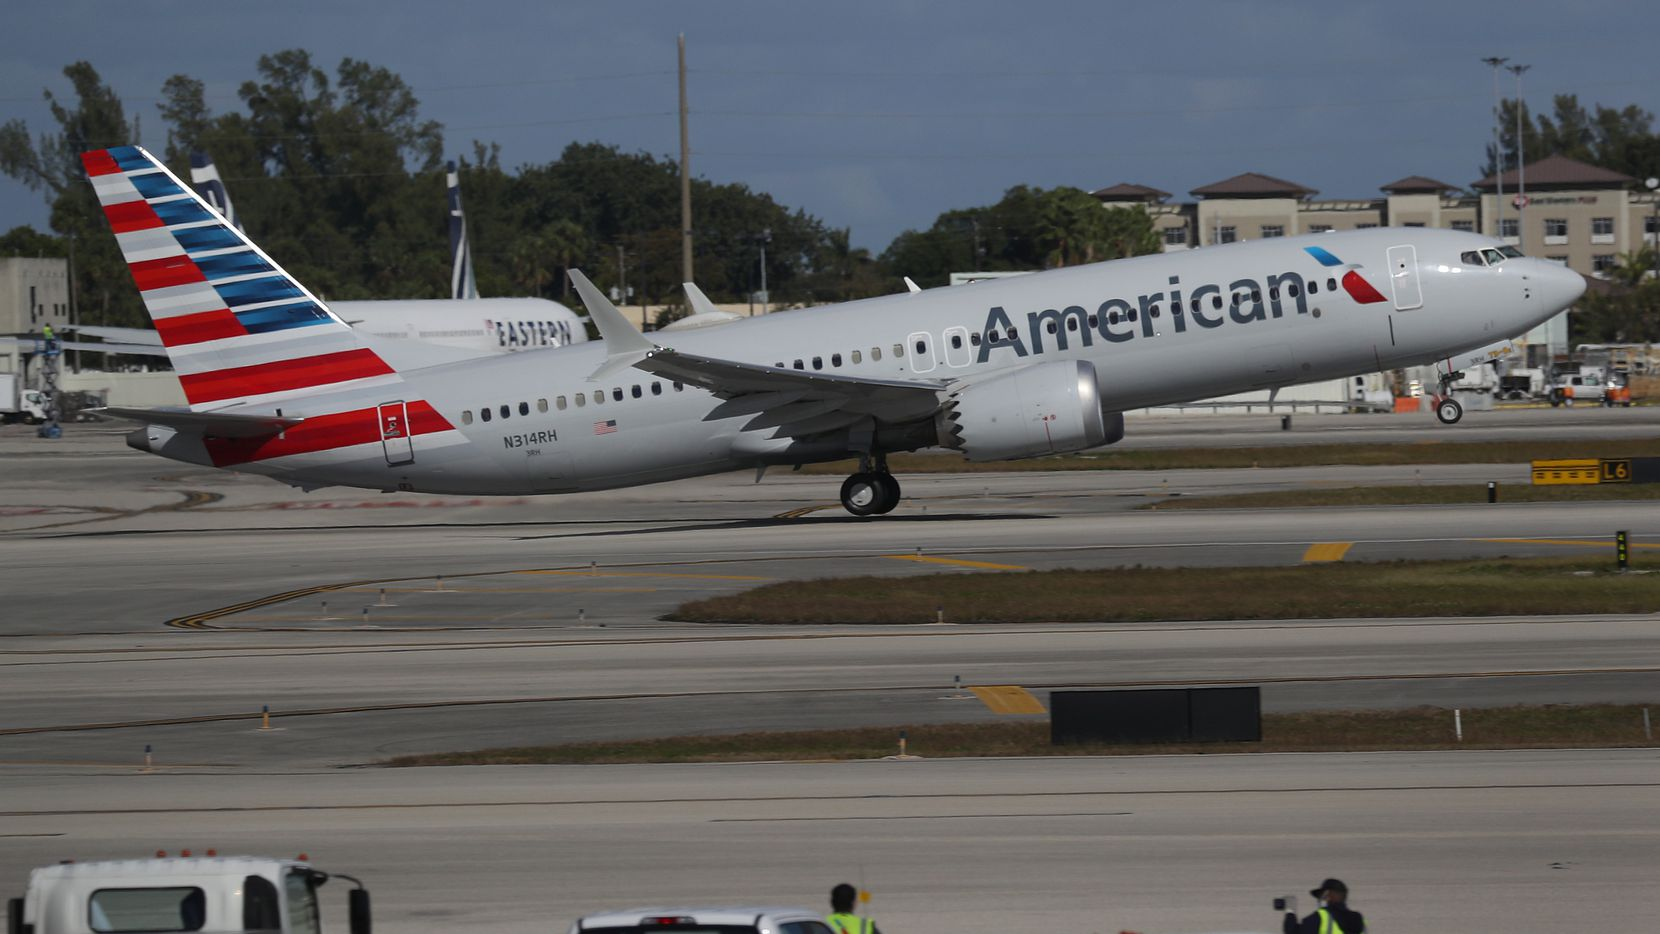 American Airlines flight 718, a Boeing 737 Max, took off Tuesday from Miami International Airport to New York. The Boeing 737 Max flew its first commercial flight since the aircraft was allowed to return to service nearly two years after being grounded worldwide following two crashes.